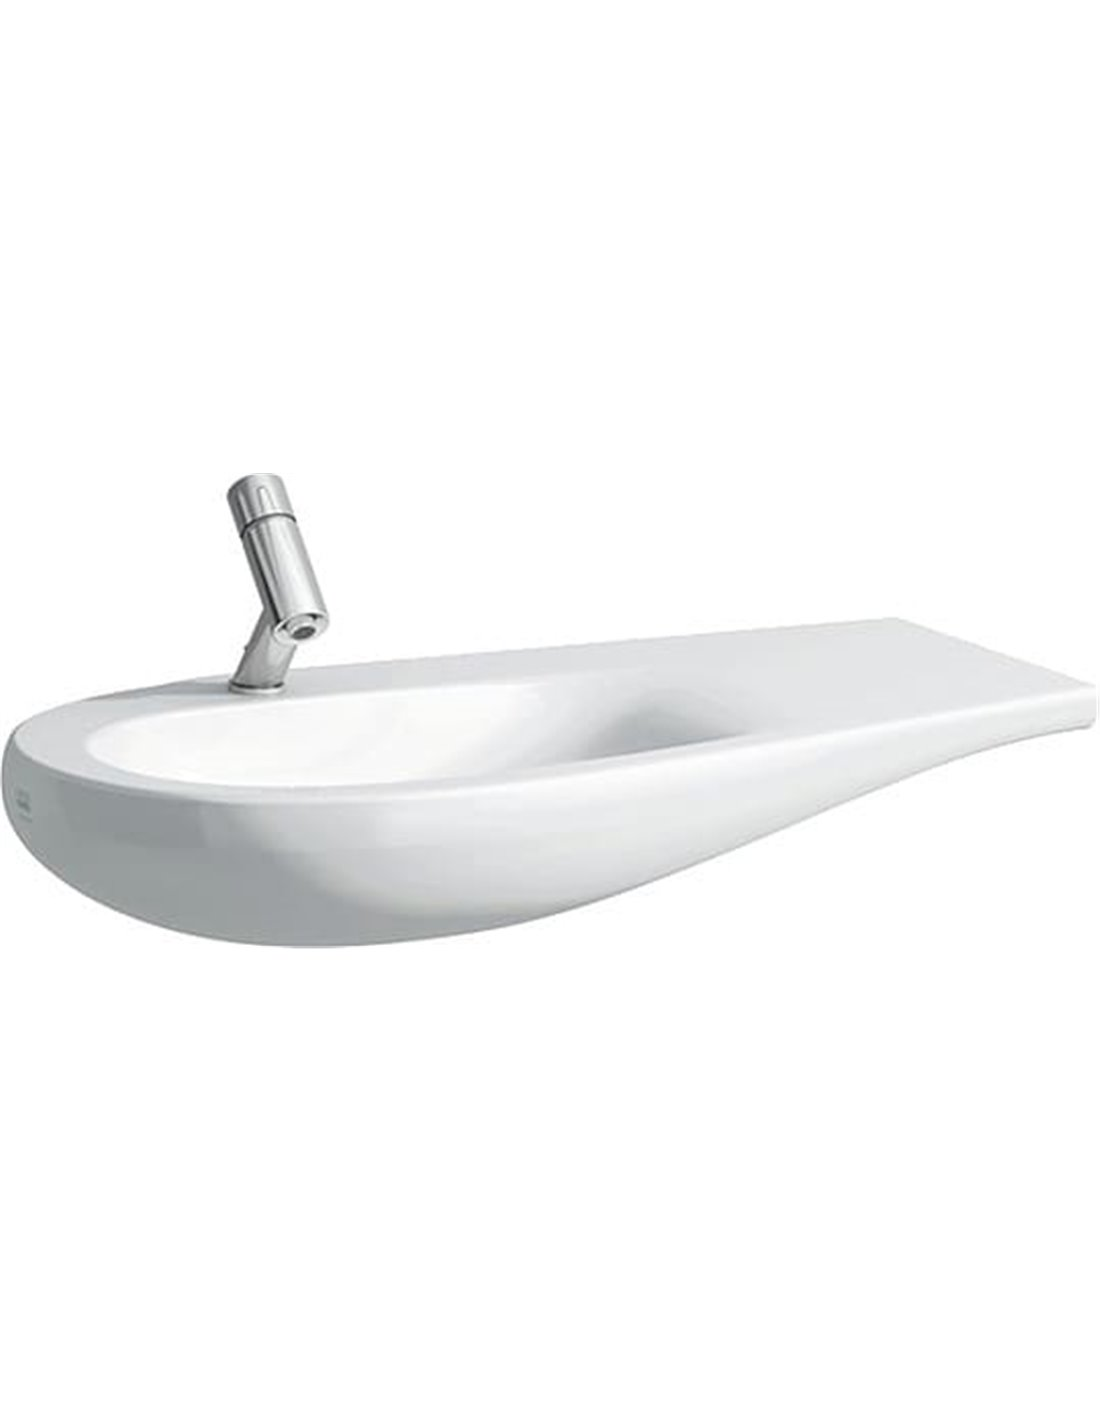 click on 90cm Countertop Basin image to enlarge